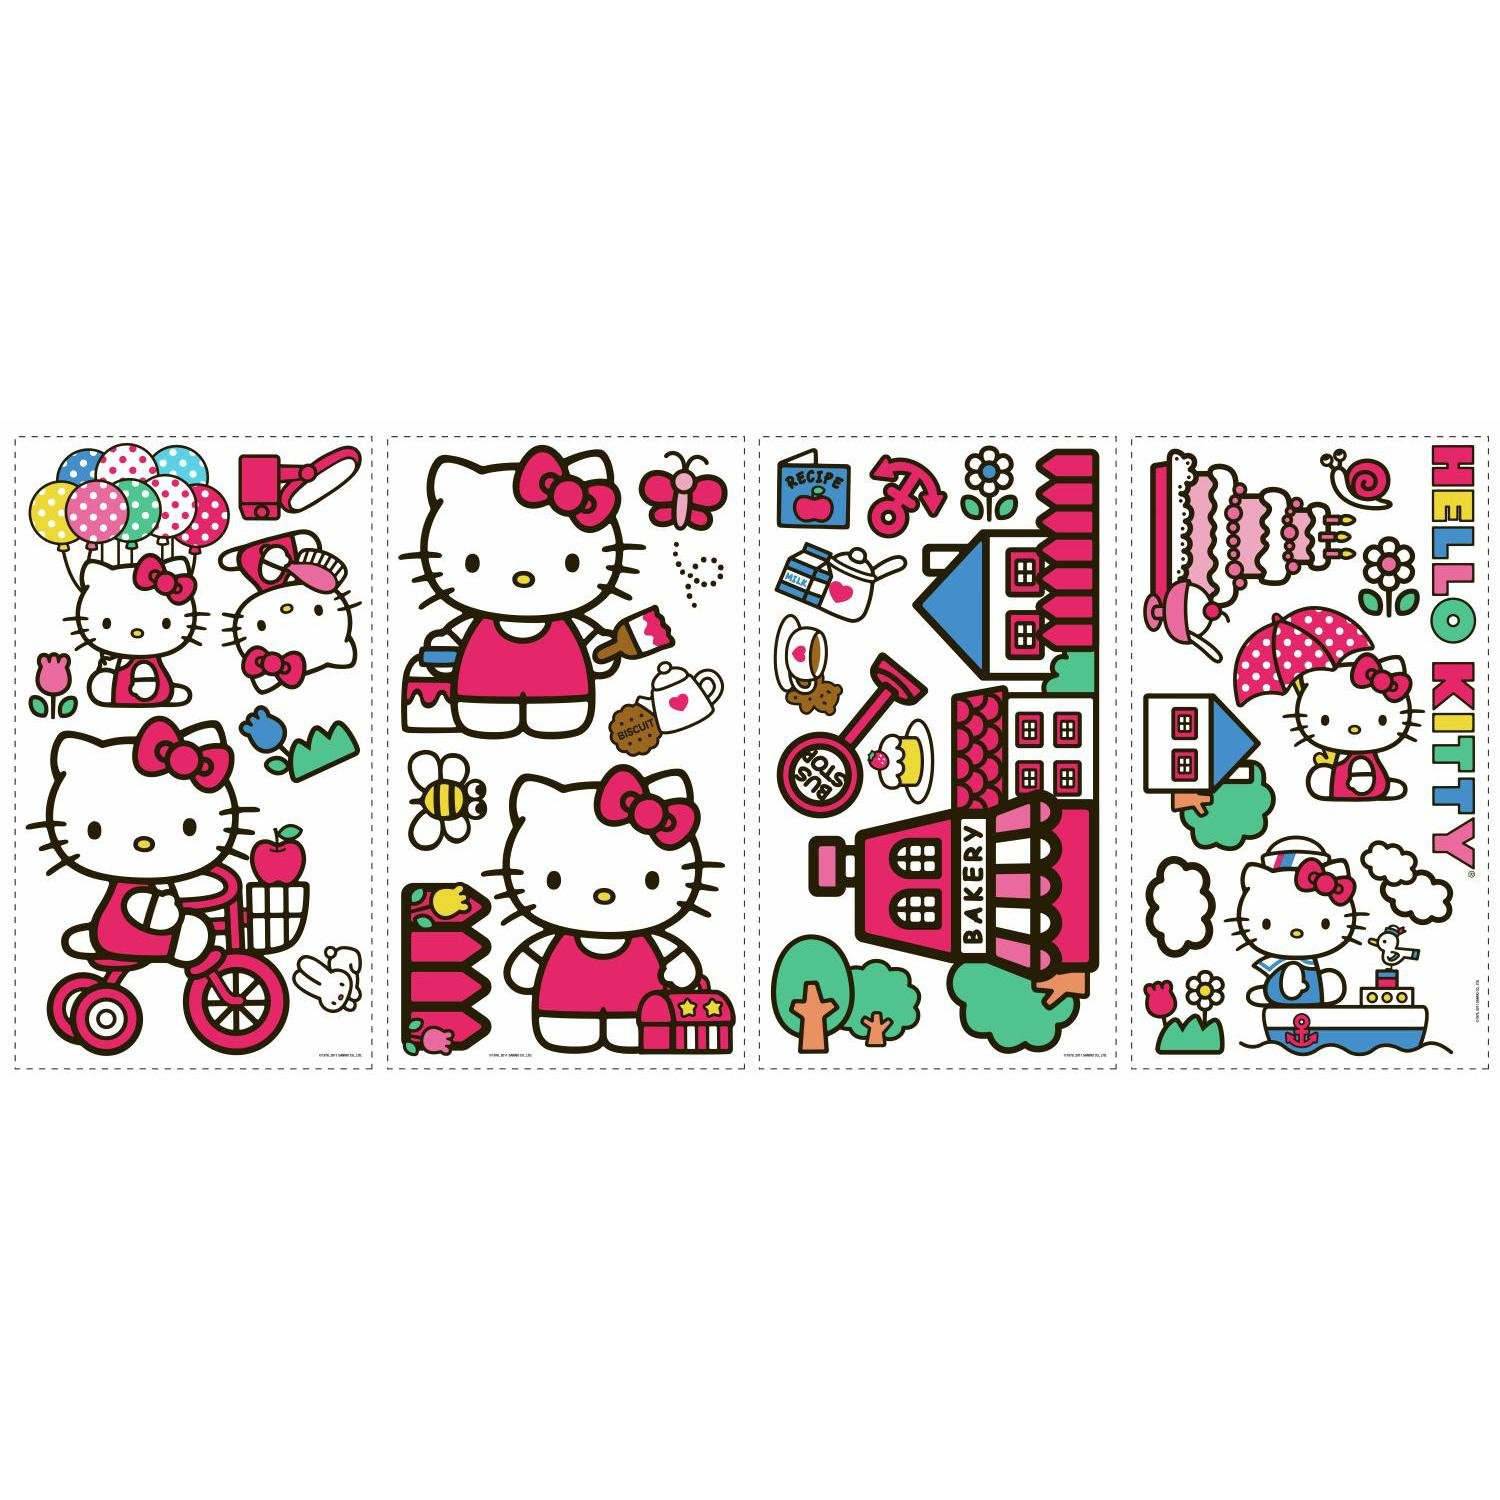 ROOMMATES RMK1678SCS Hello Kitty The World Of Hello Kitty Peel And Stick  Wall Decals   Wall Decor Stickers   Amazon.com Part 25